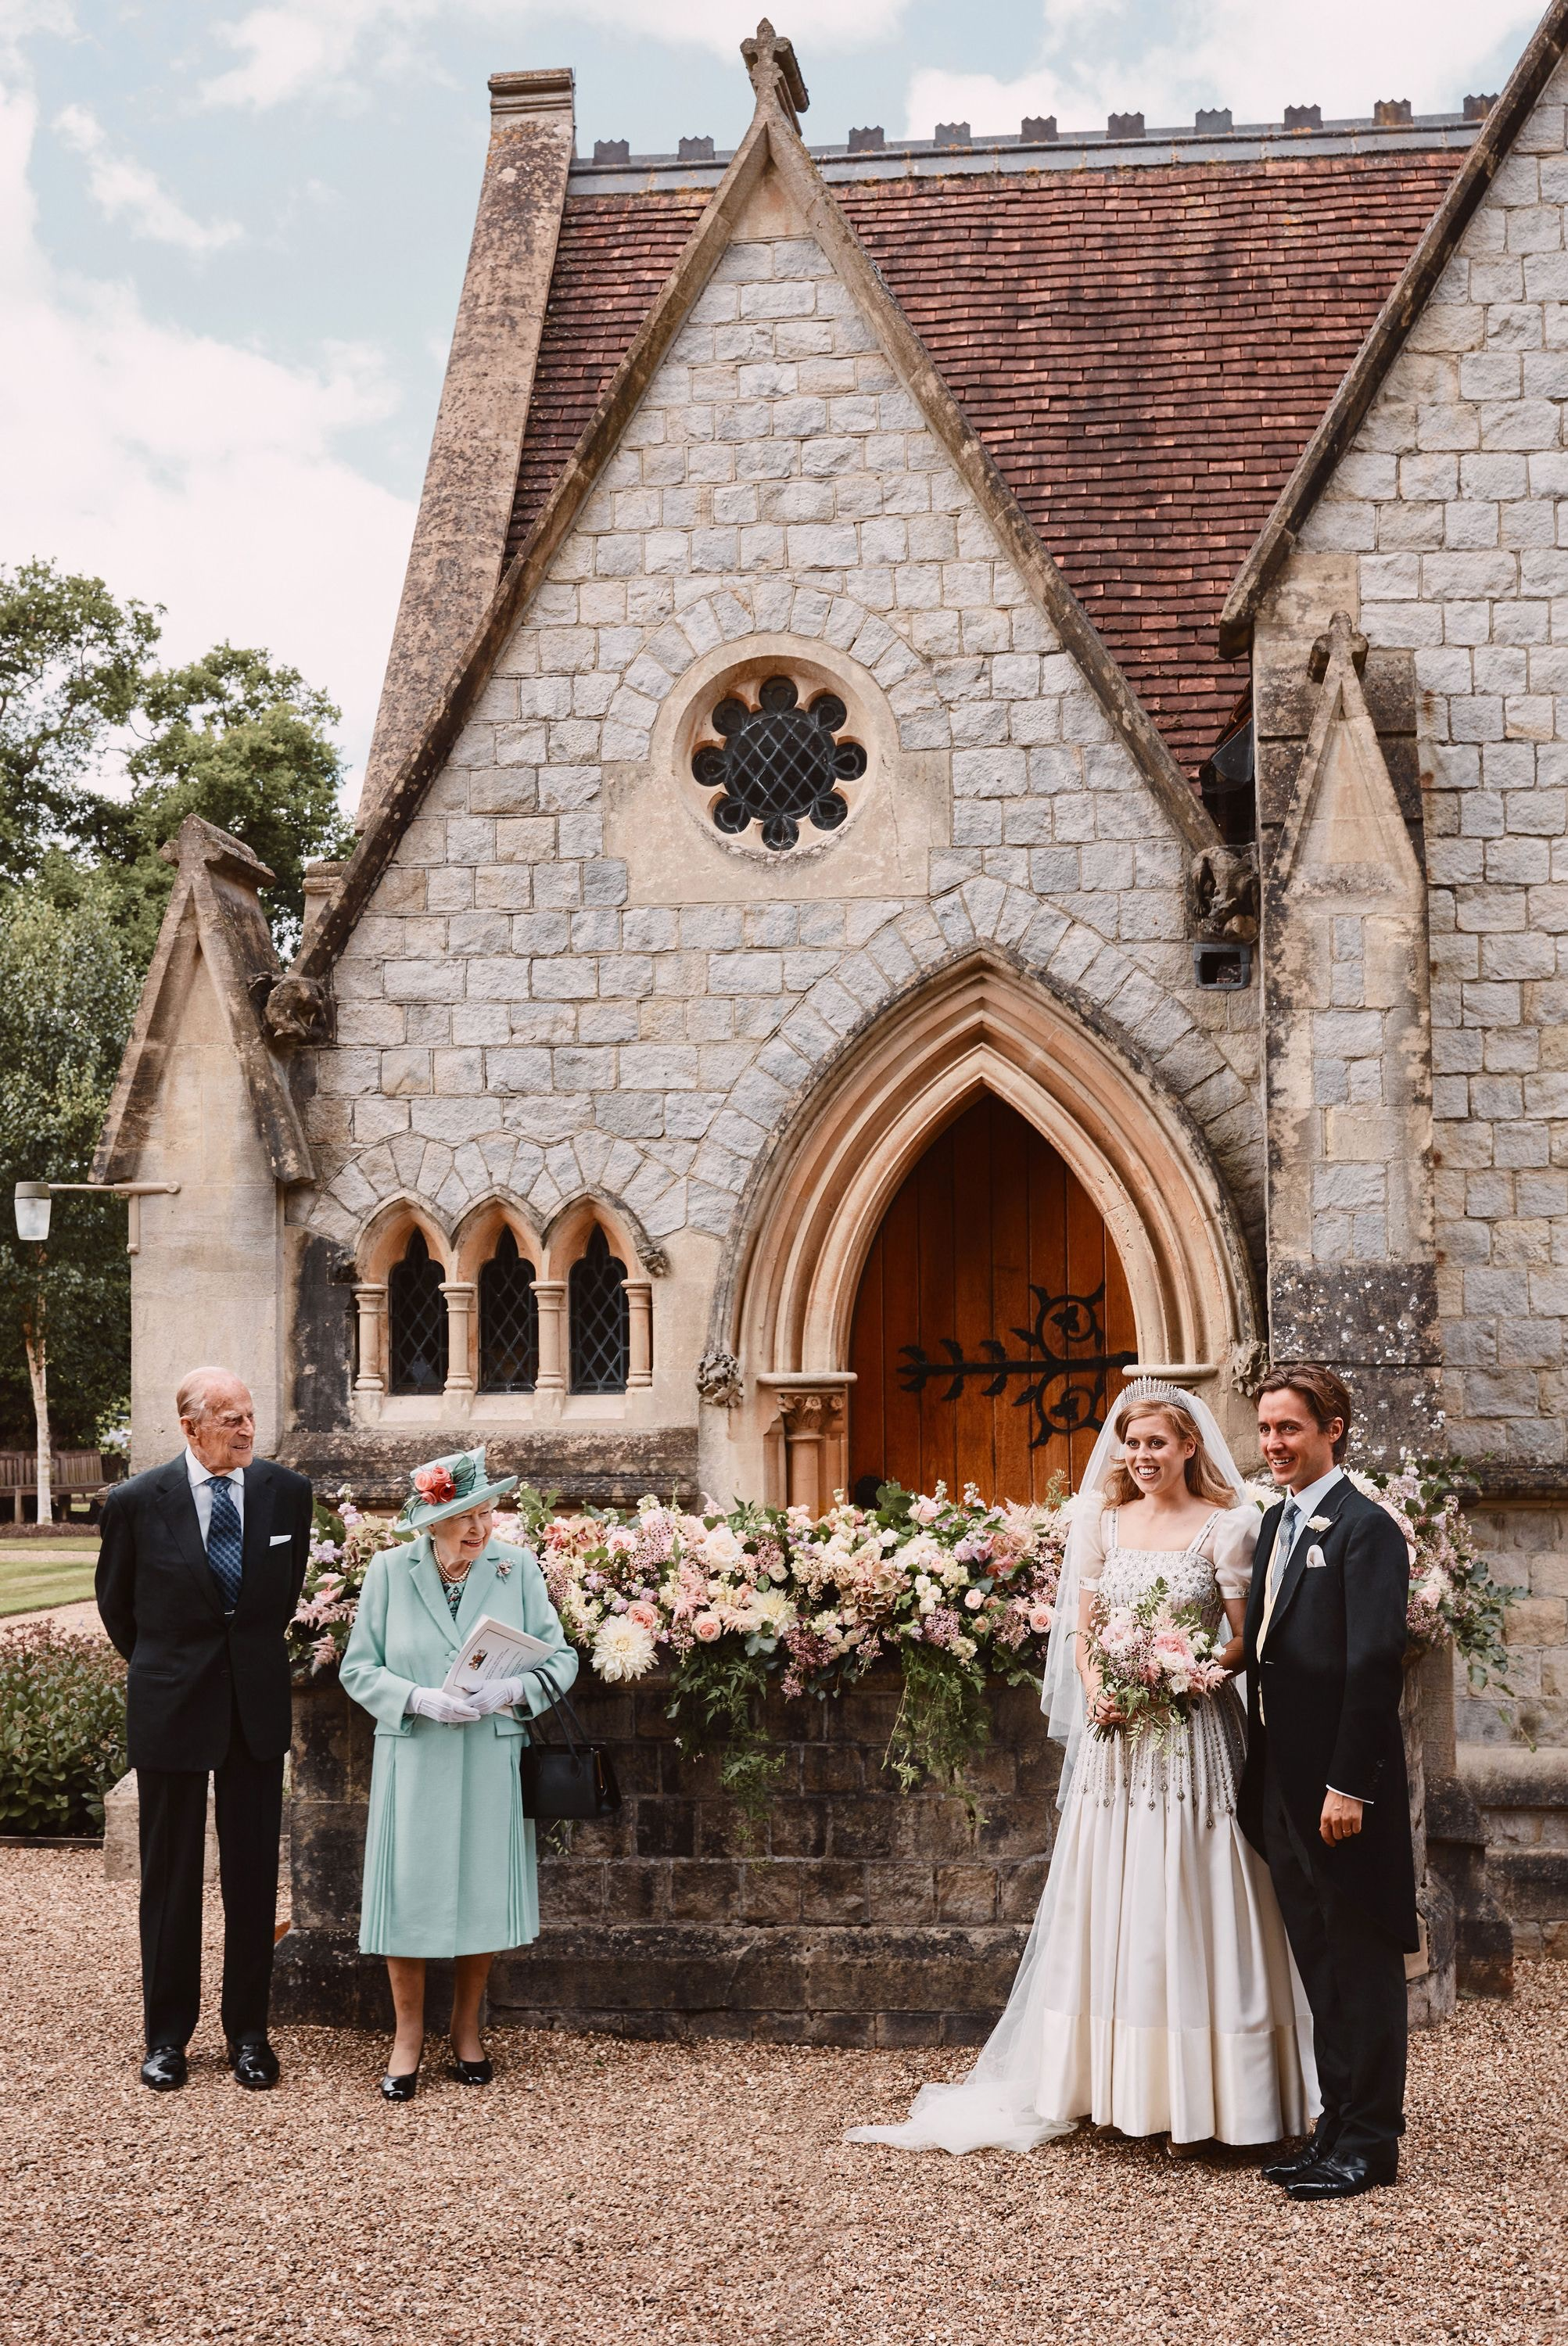 Queen Elizabeth, Prince Phillip stand socially distanced from Princess Beatrice and Edoardo Mapelli Mozzi on their wedding day